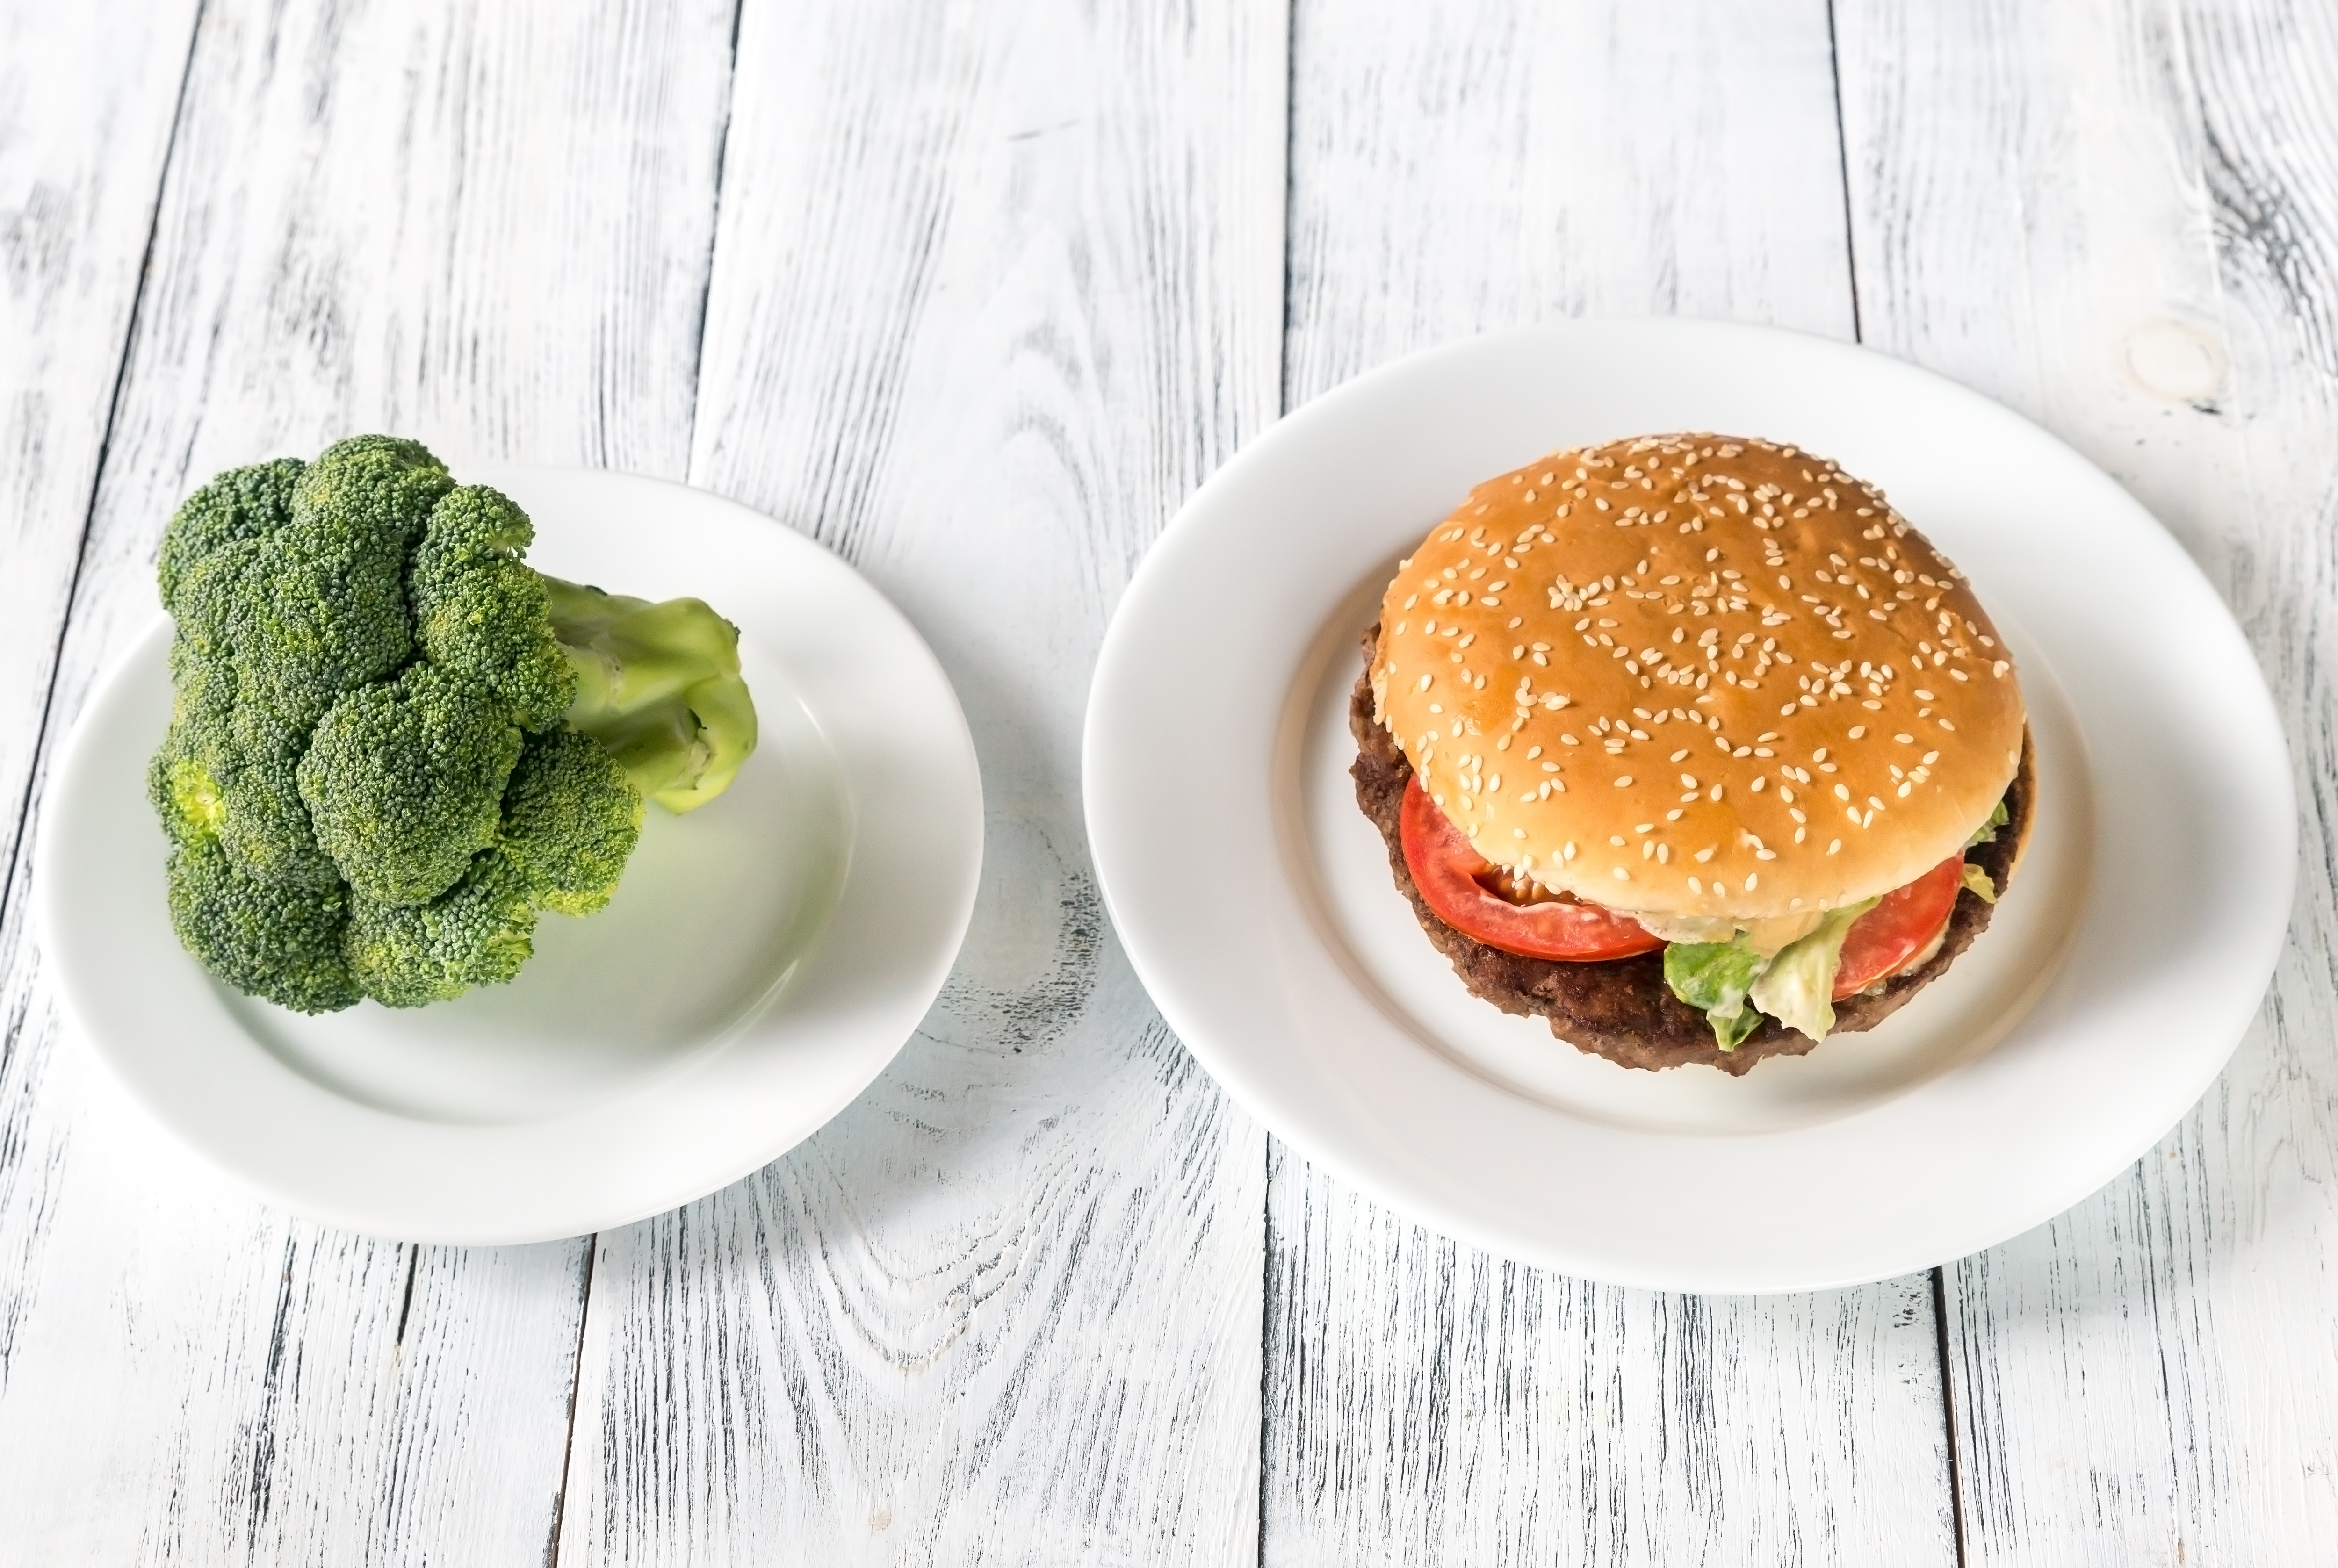 Healthy Eating Decoded: Would you believe us if we said there's a way around binge-eating?